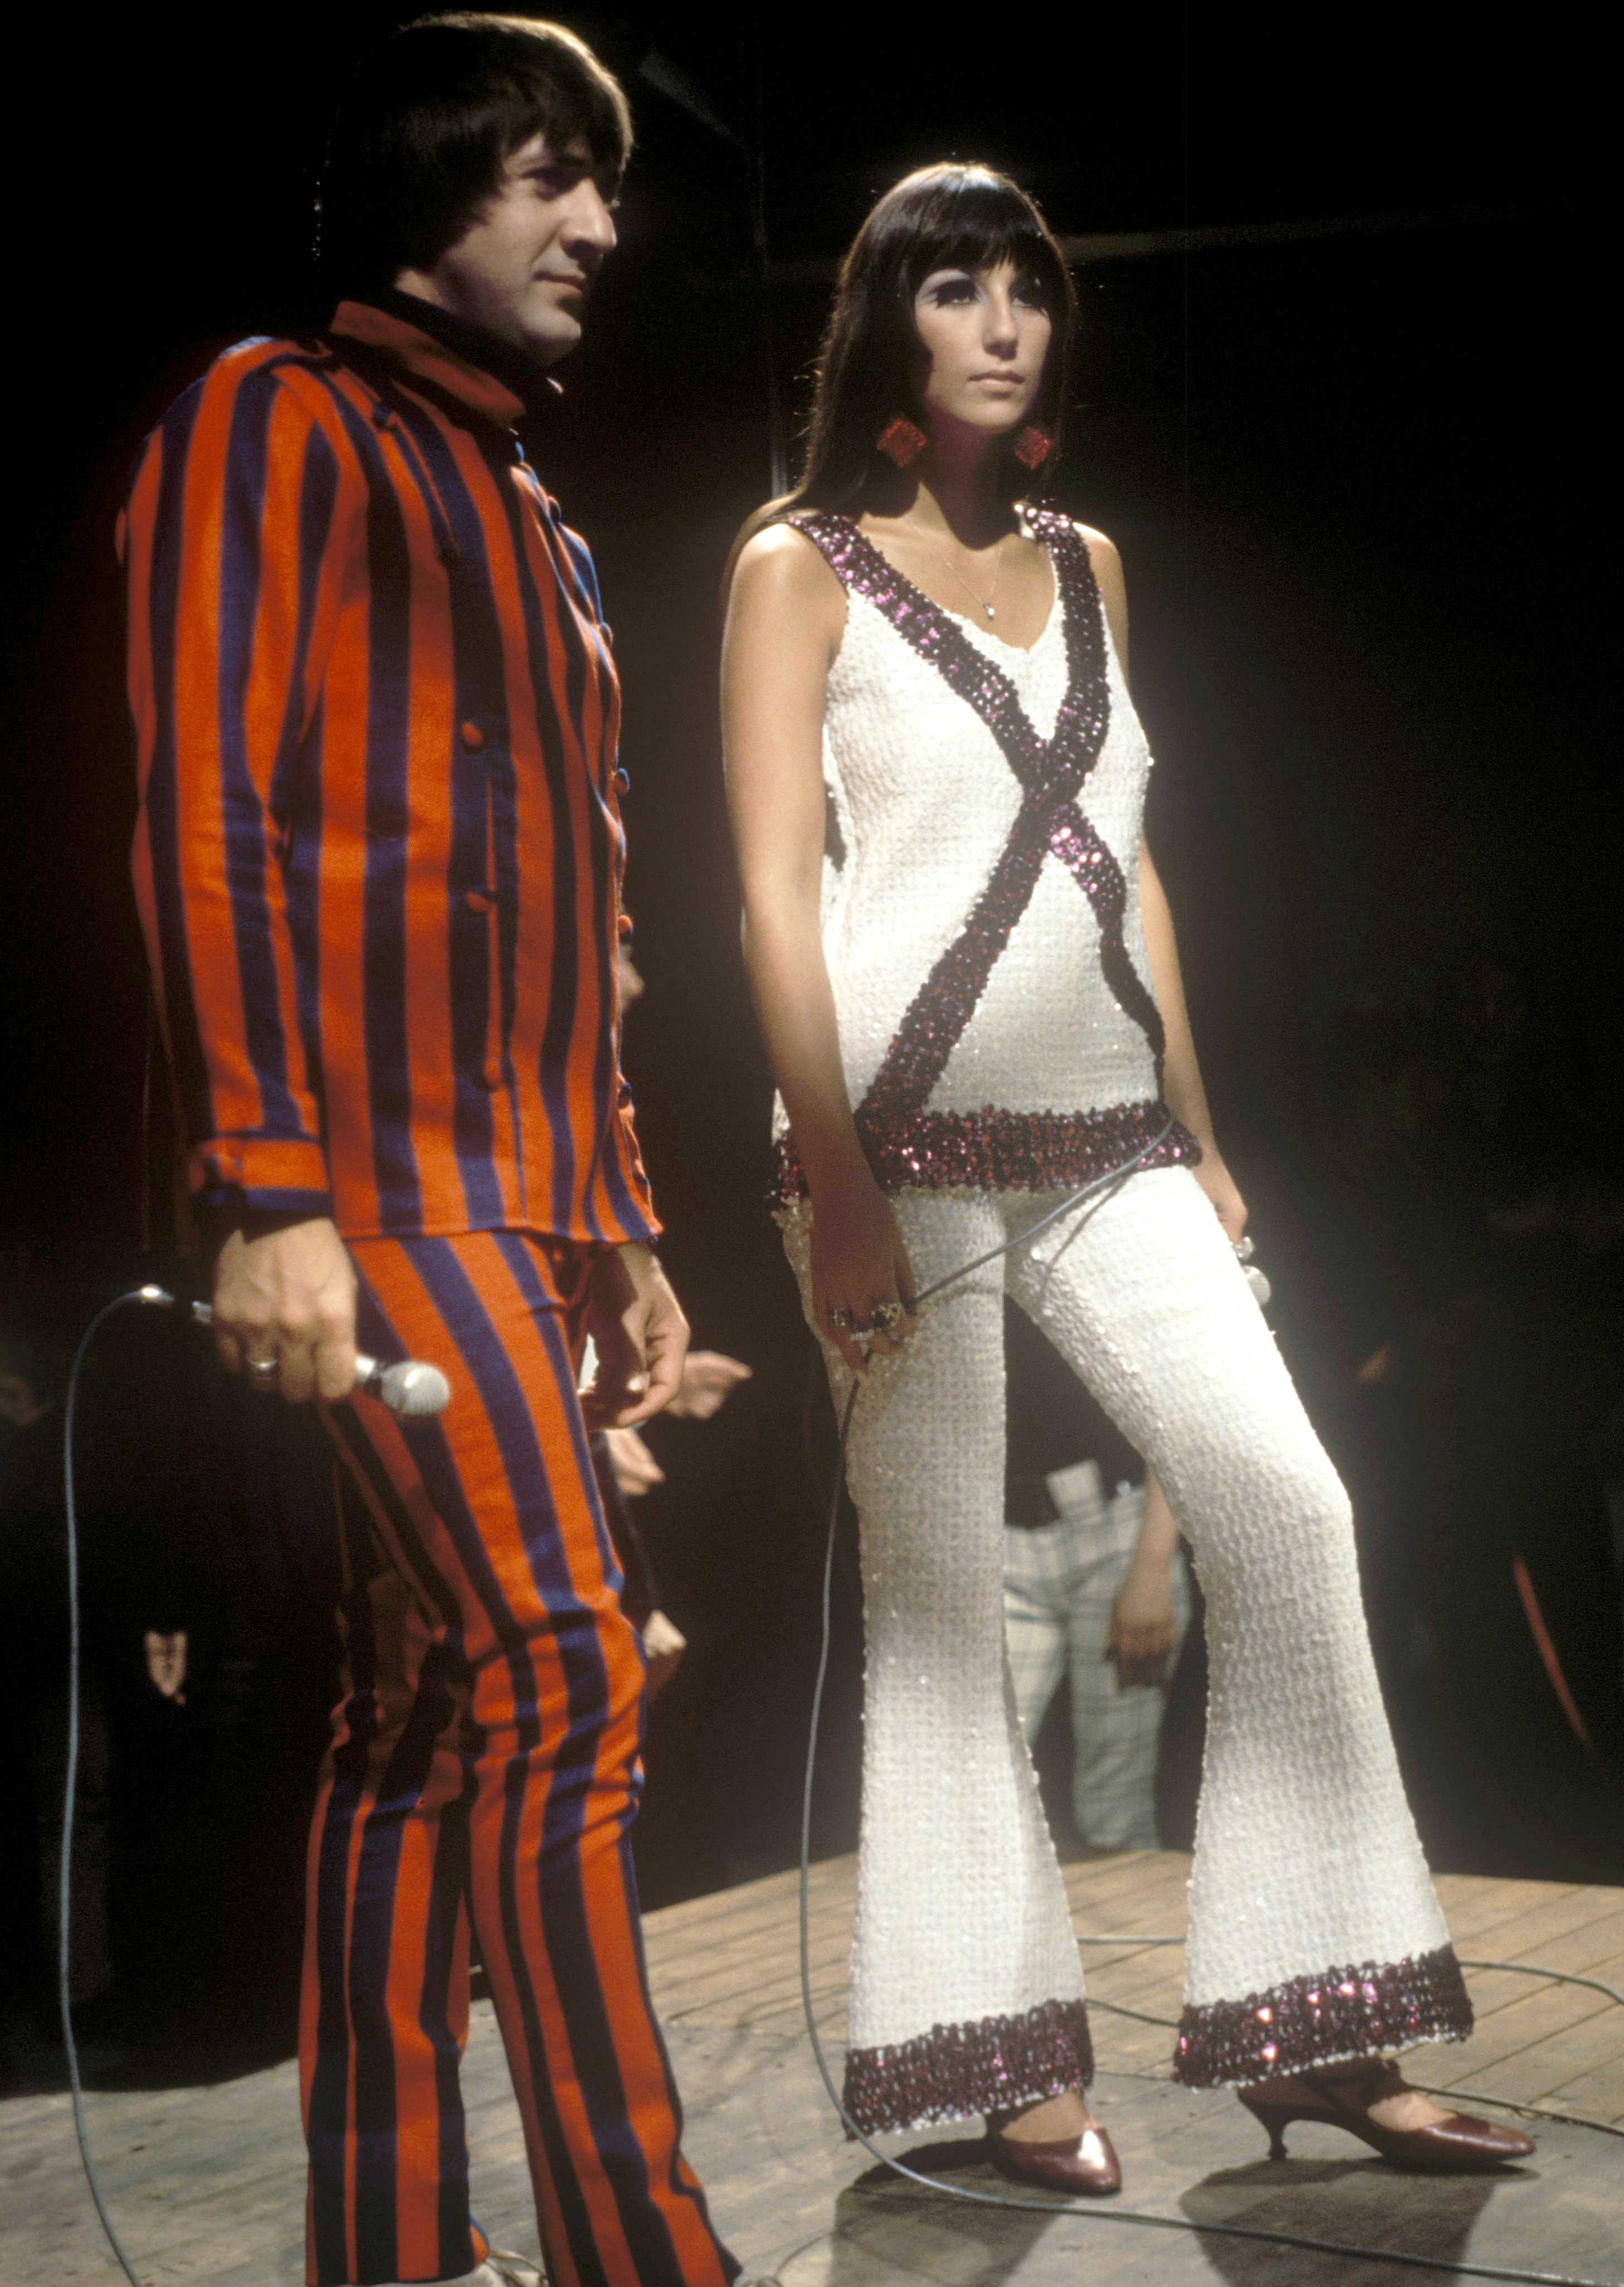 Cher Through The Years - After dropping out of high school and moving to Los Angeles, the El Centro, California, native met and fell in love with Sonny. They traveled to England and found moderate success before releasing their debut album, Look at Us , in August 1965.